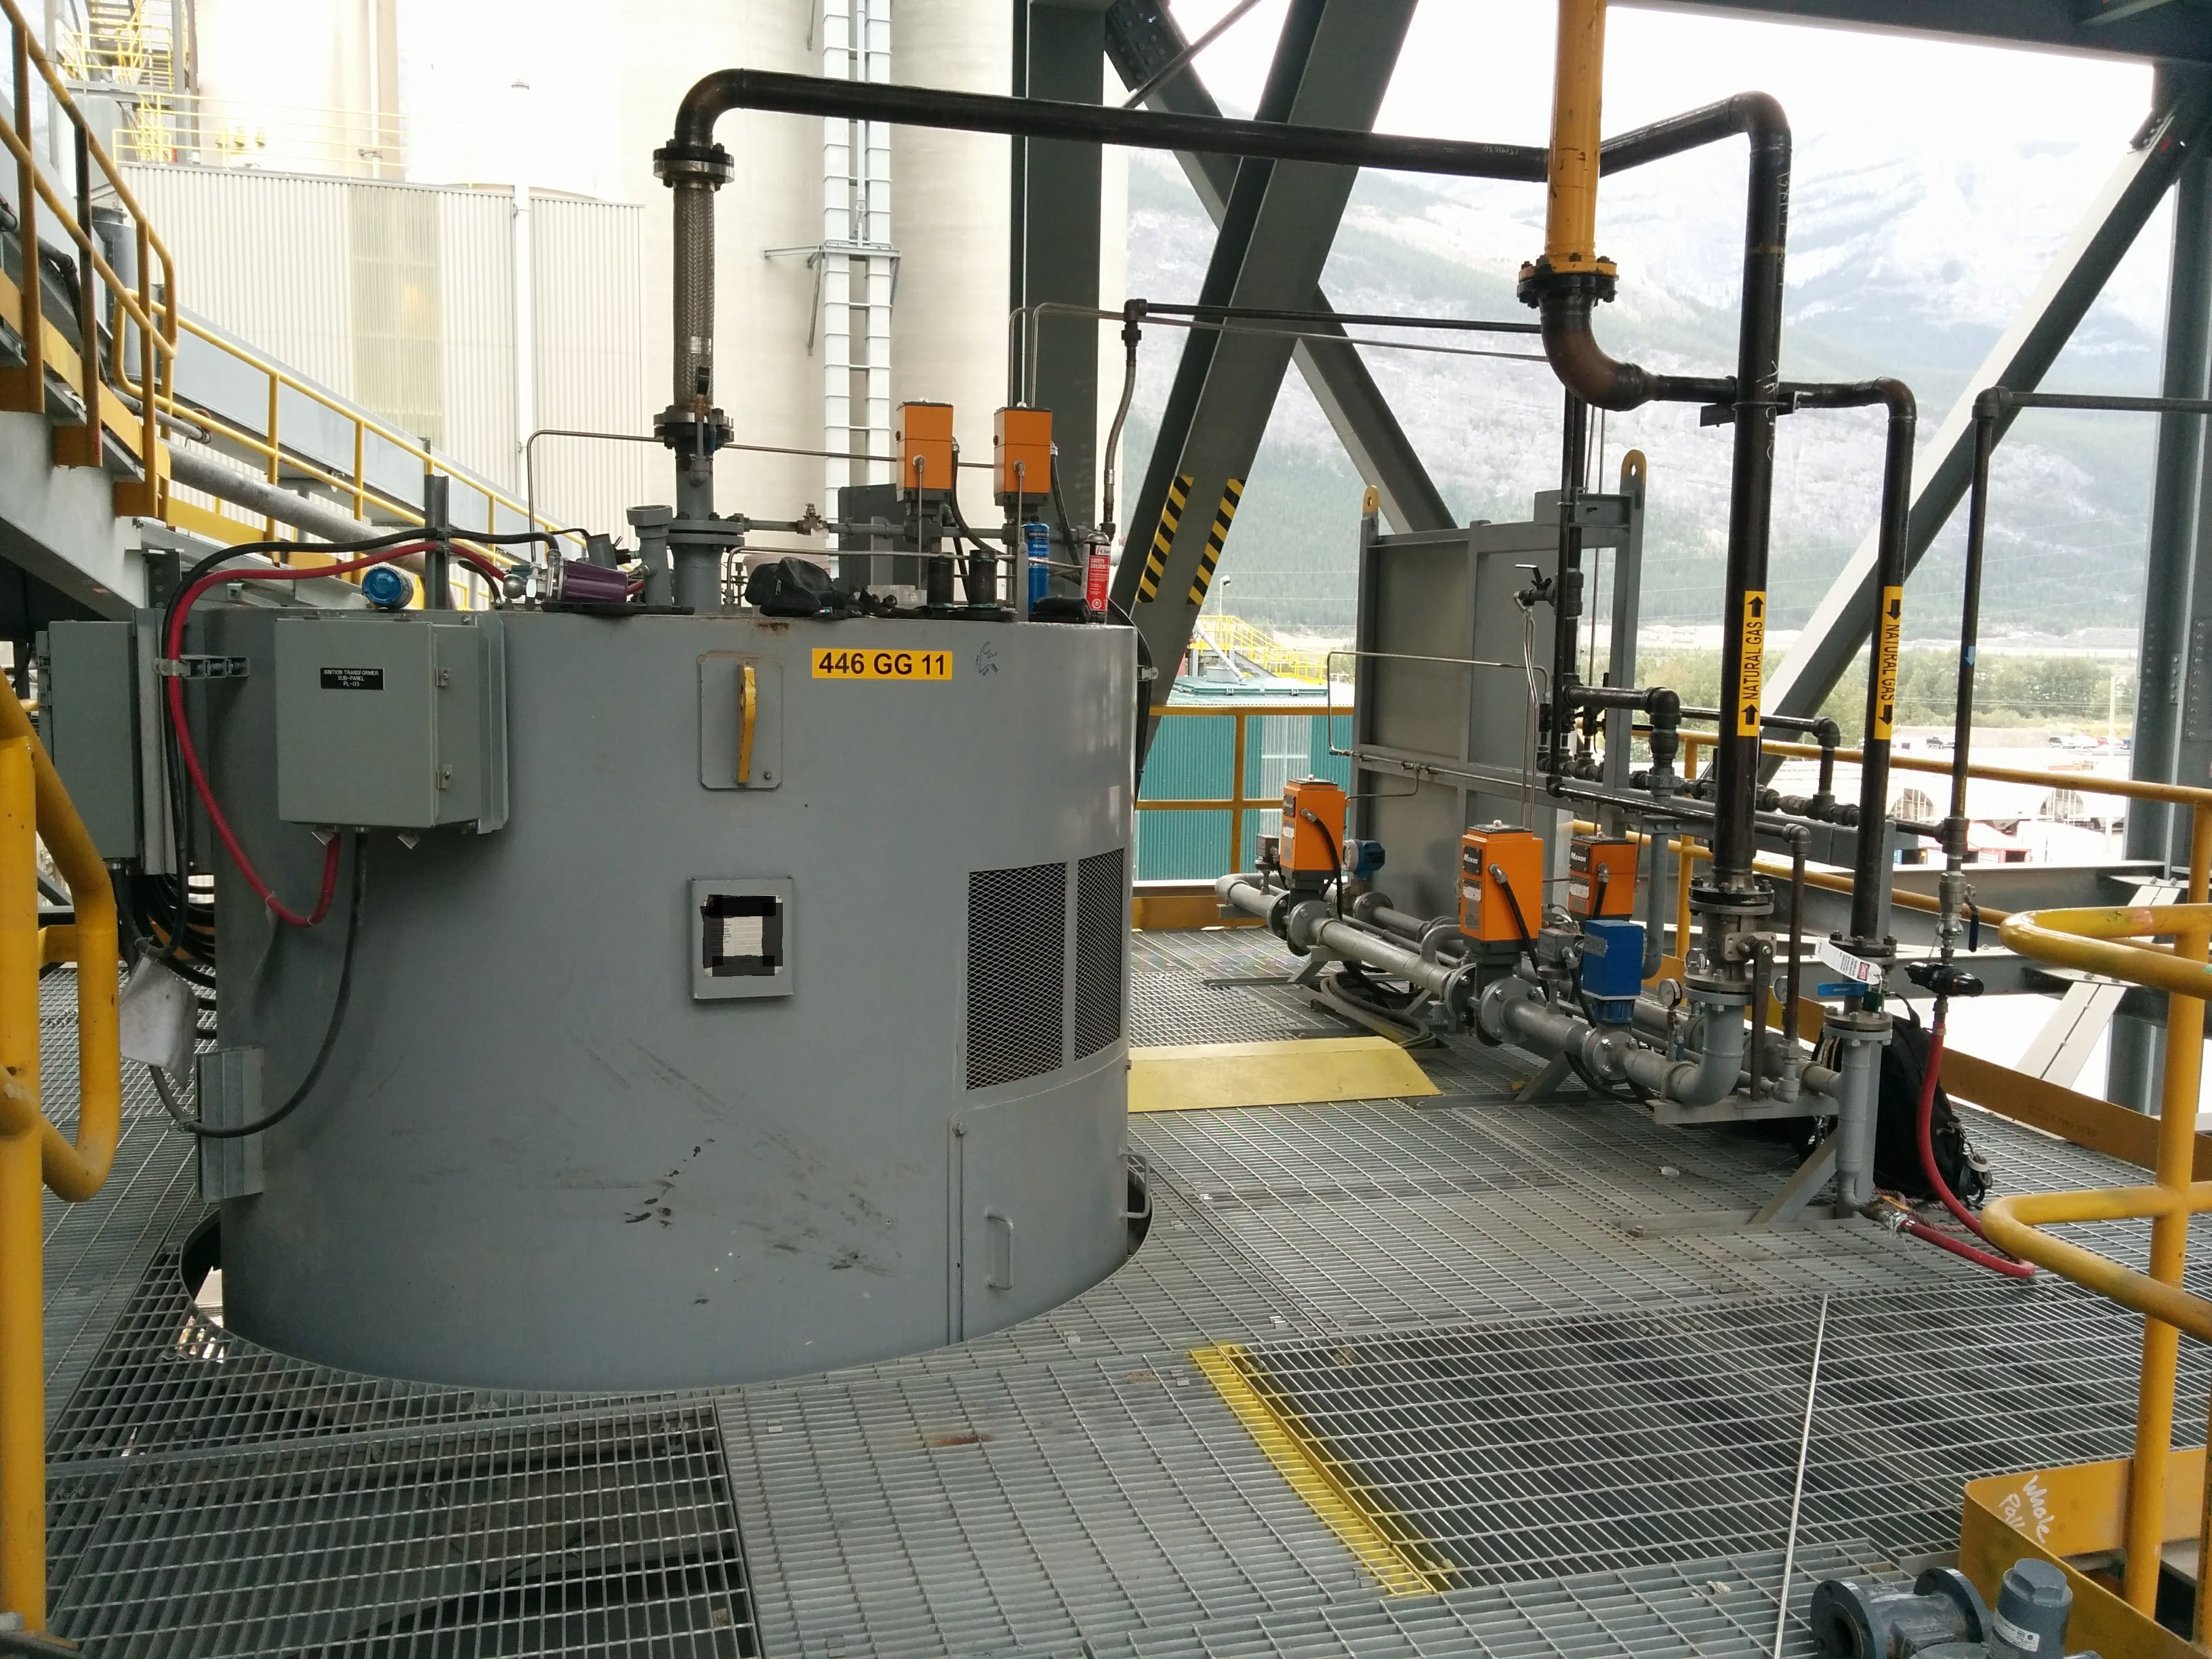 LafargeHolcim Cement Hot Gas Generator and Fuel Skid